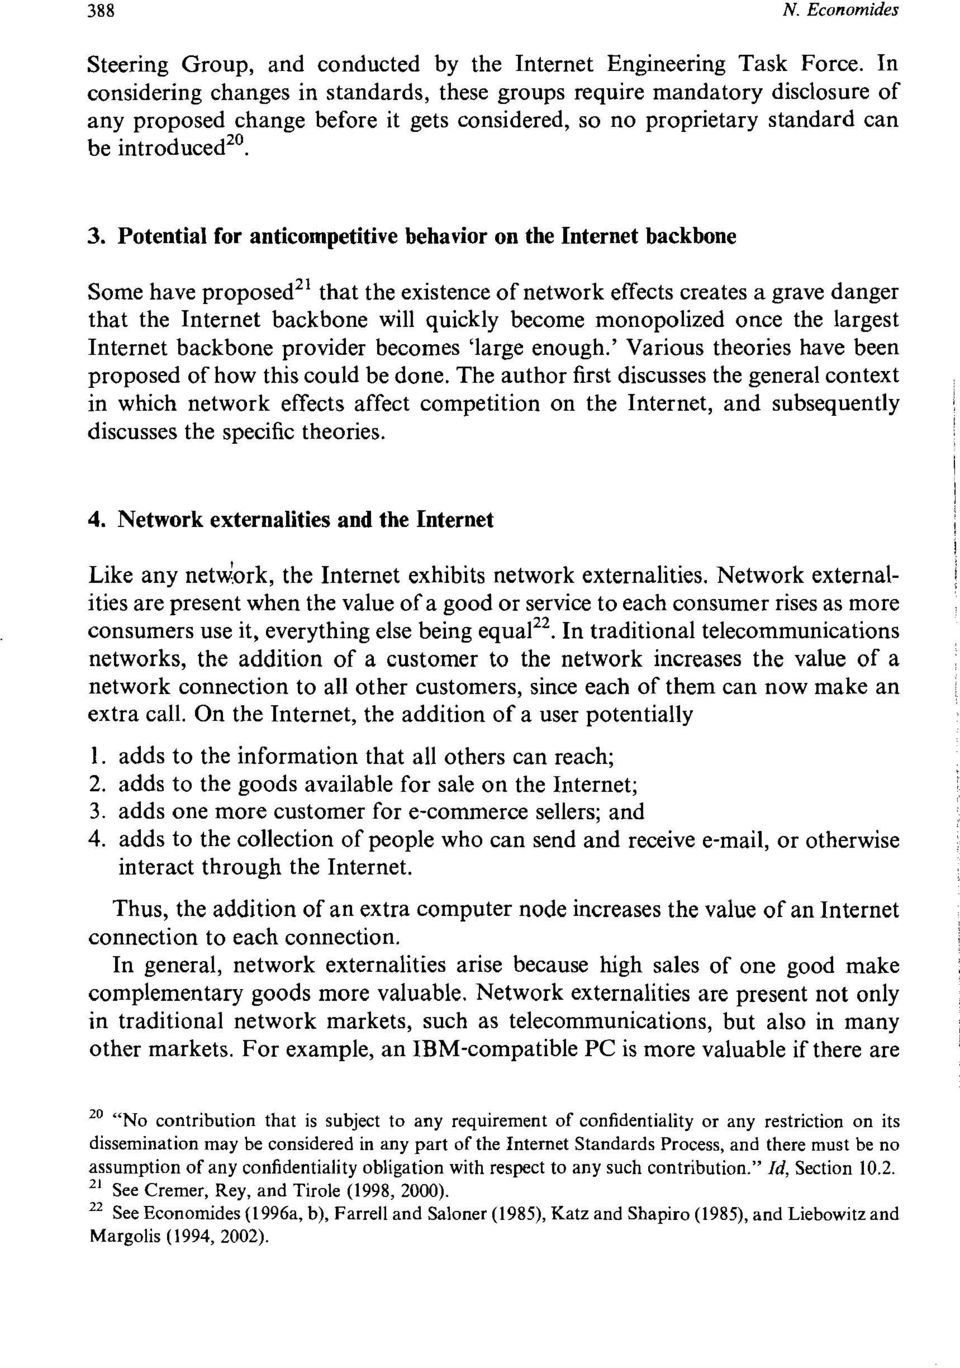 Potential for anticompetitive behavior on the Internet backbone Some have proposed2' that the existence of network effects creates a grave danger that the Internet backbone will quickly become